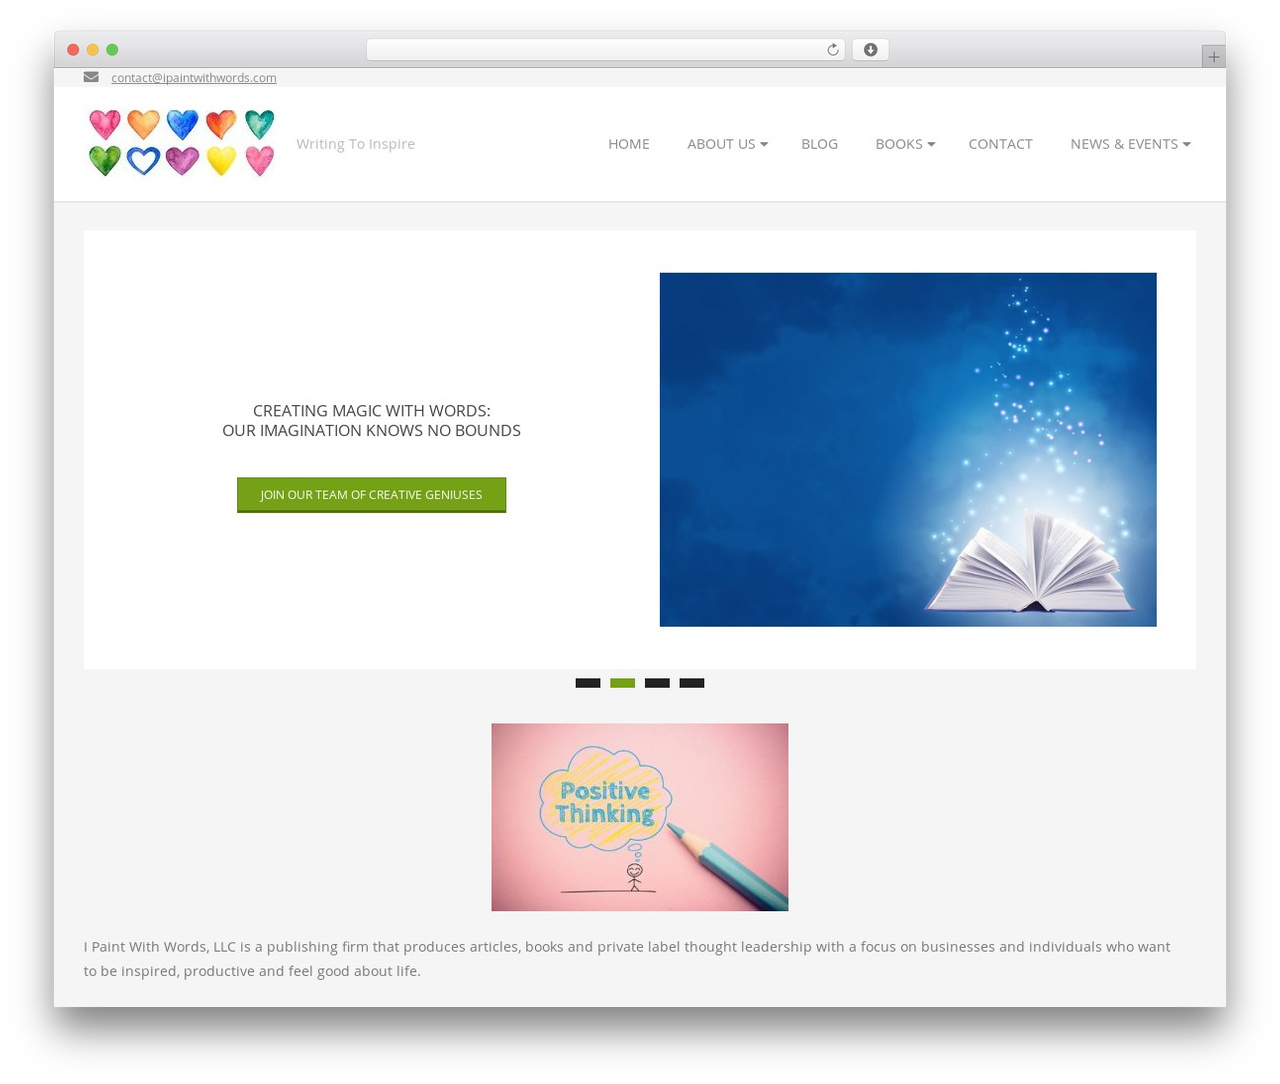 Brigsby Premium best WordPress template - ipaintwithwords.com